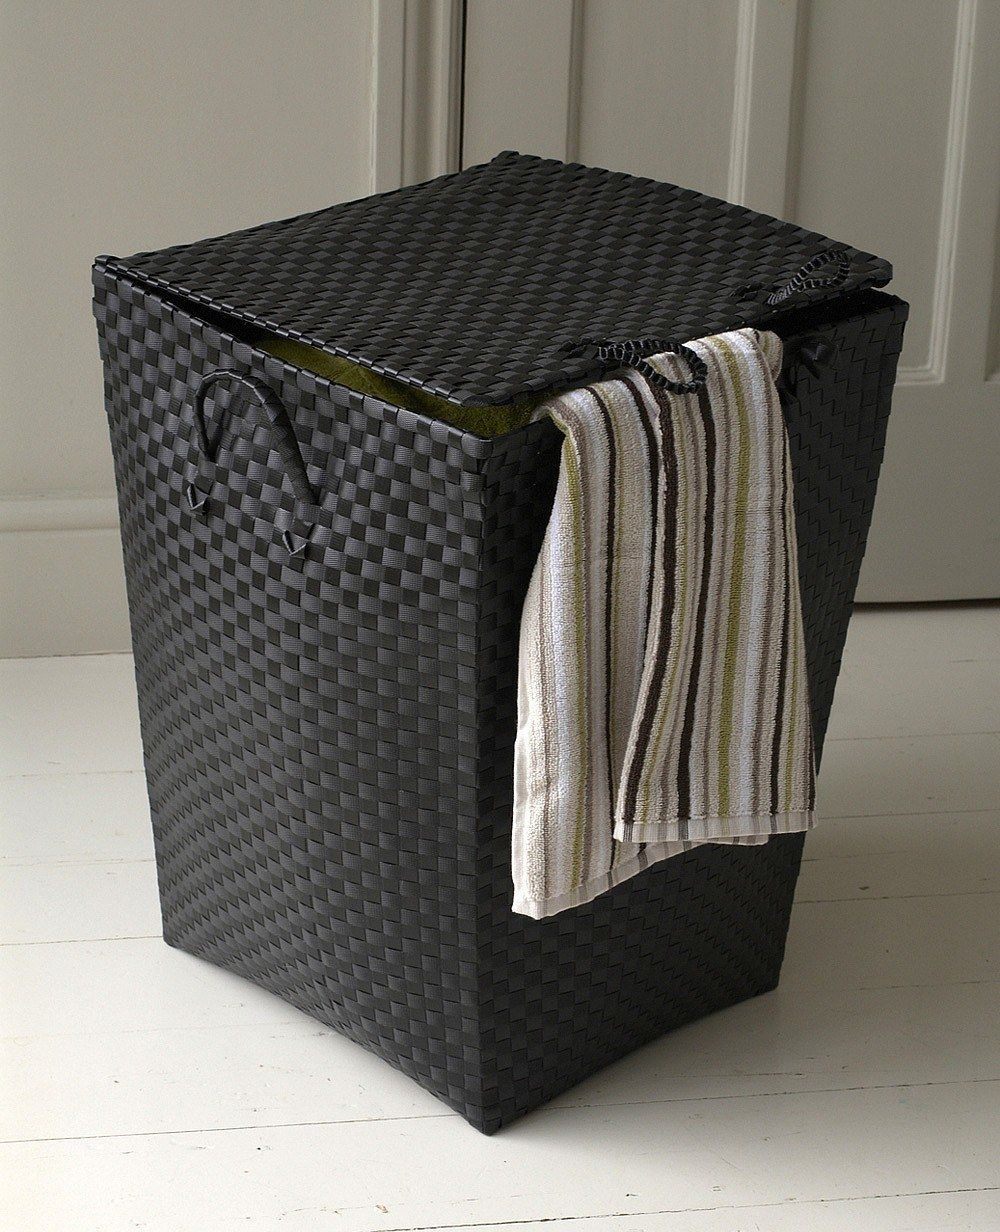 Stylish Black Laundry Basket Made From Woven Plastic Strapping Laundry Basket With Lid Black Laundry Basket Laundry Bag